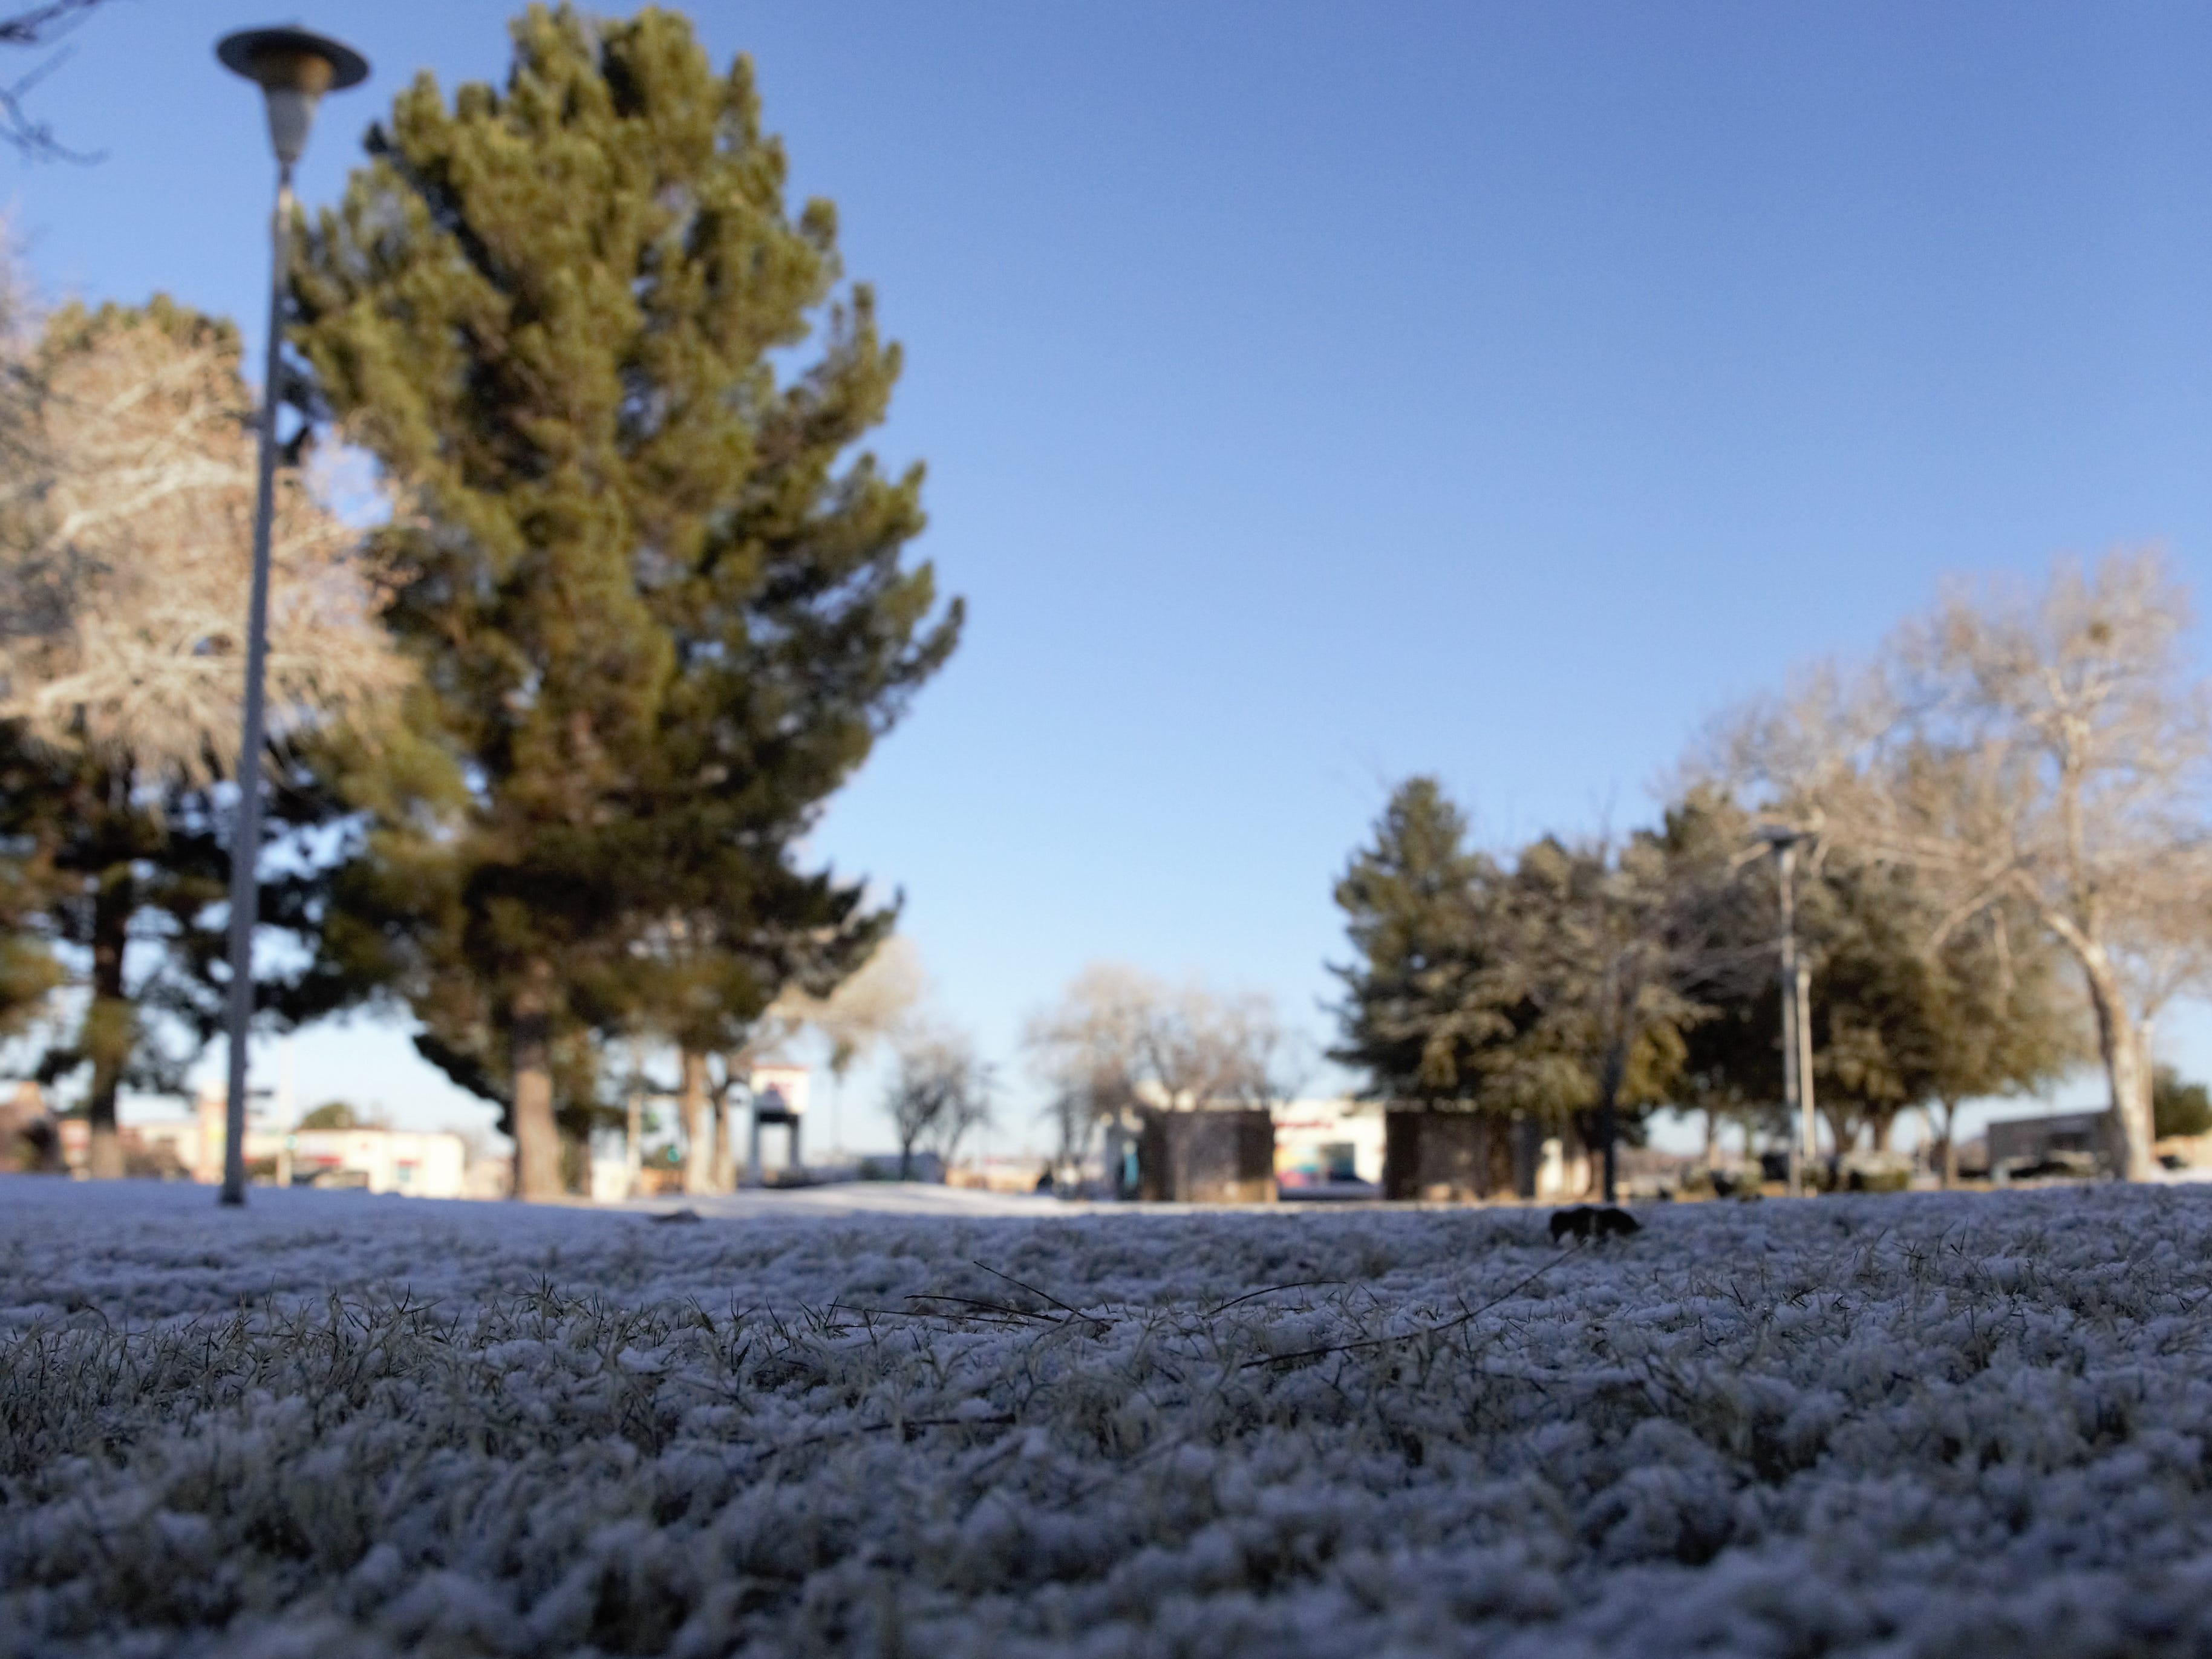 Las Crucens awoke to a clear sky the morning of Thursday, Jan. 3, 2019, after the area received a dusting of snow the previous night. Remnants of the snowfall are seen at Albert Johnson Park, located at North Main Street and Picacho Avenue.